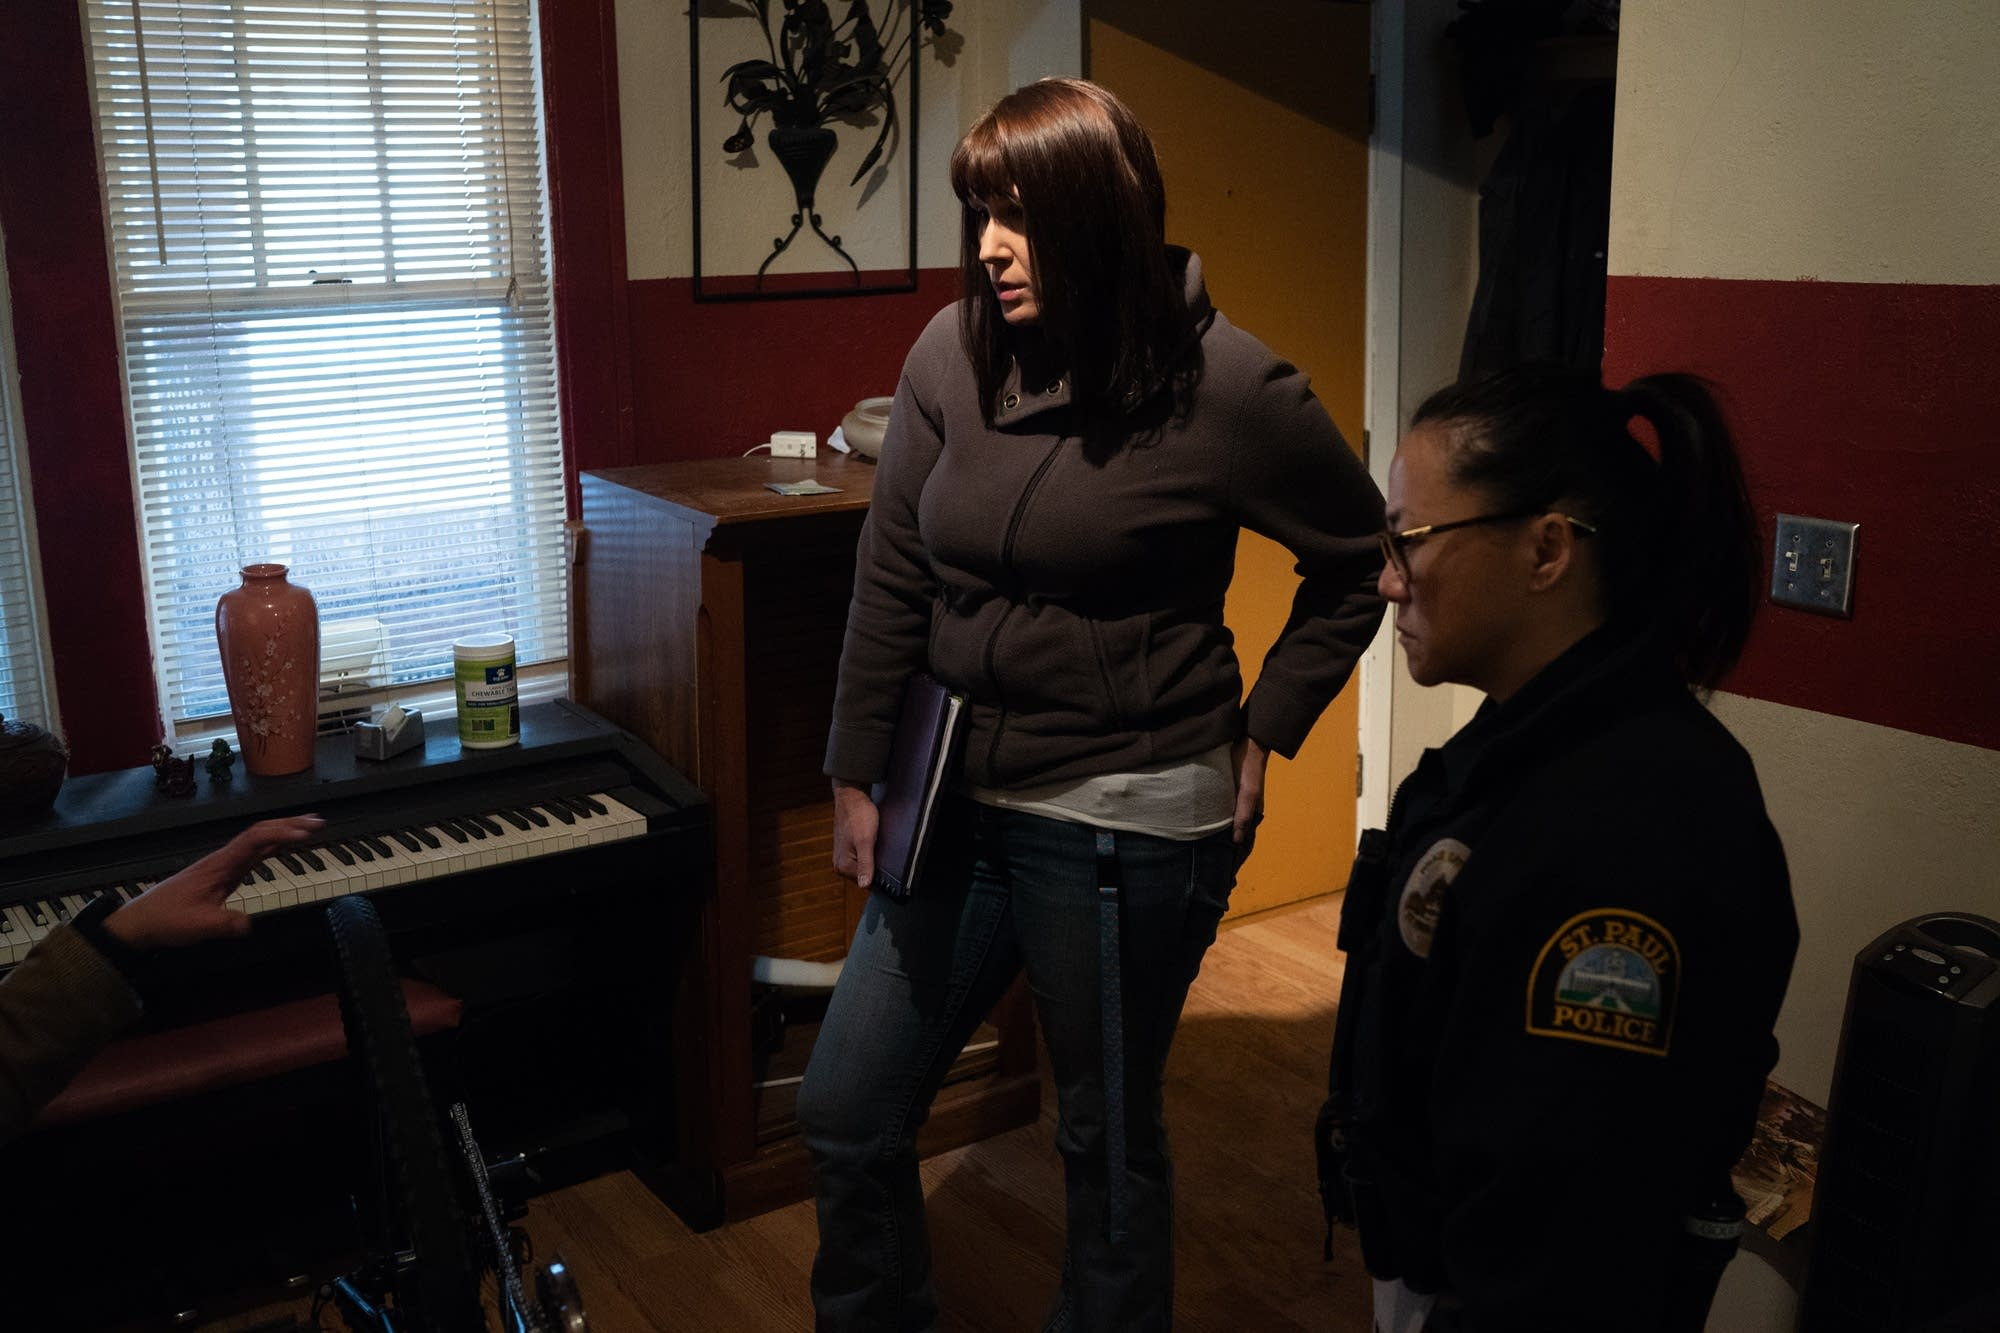 Social worker Amber Ruth and officer Lori Goulet consult a person.